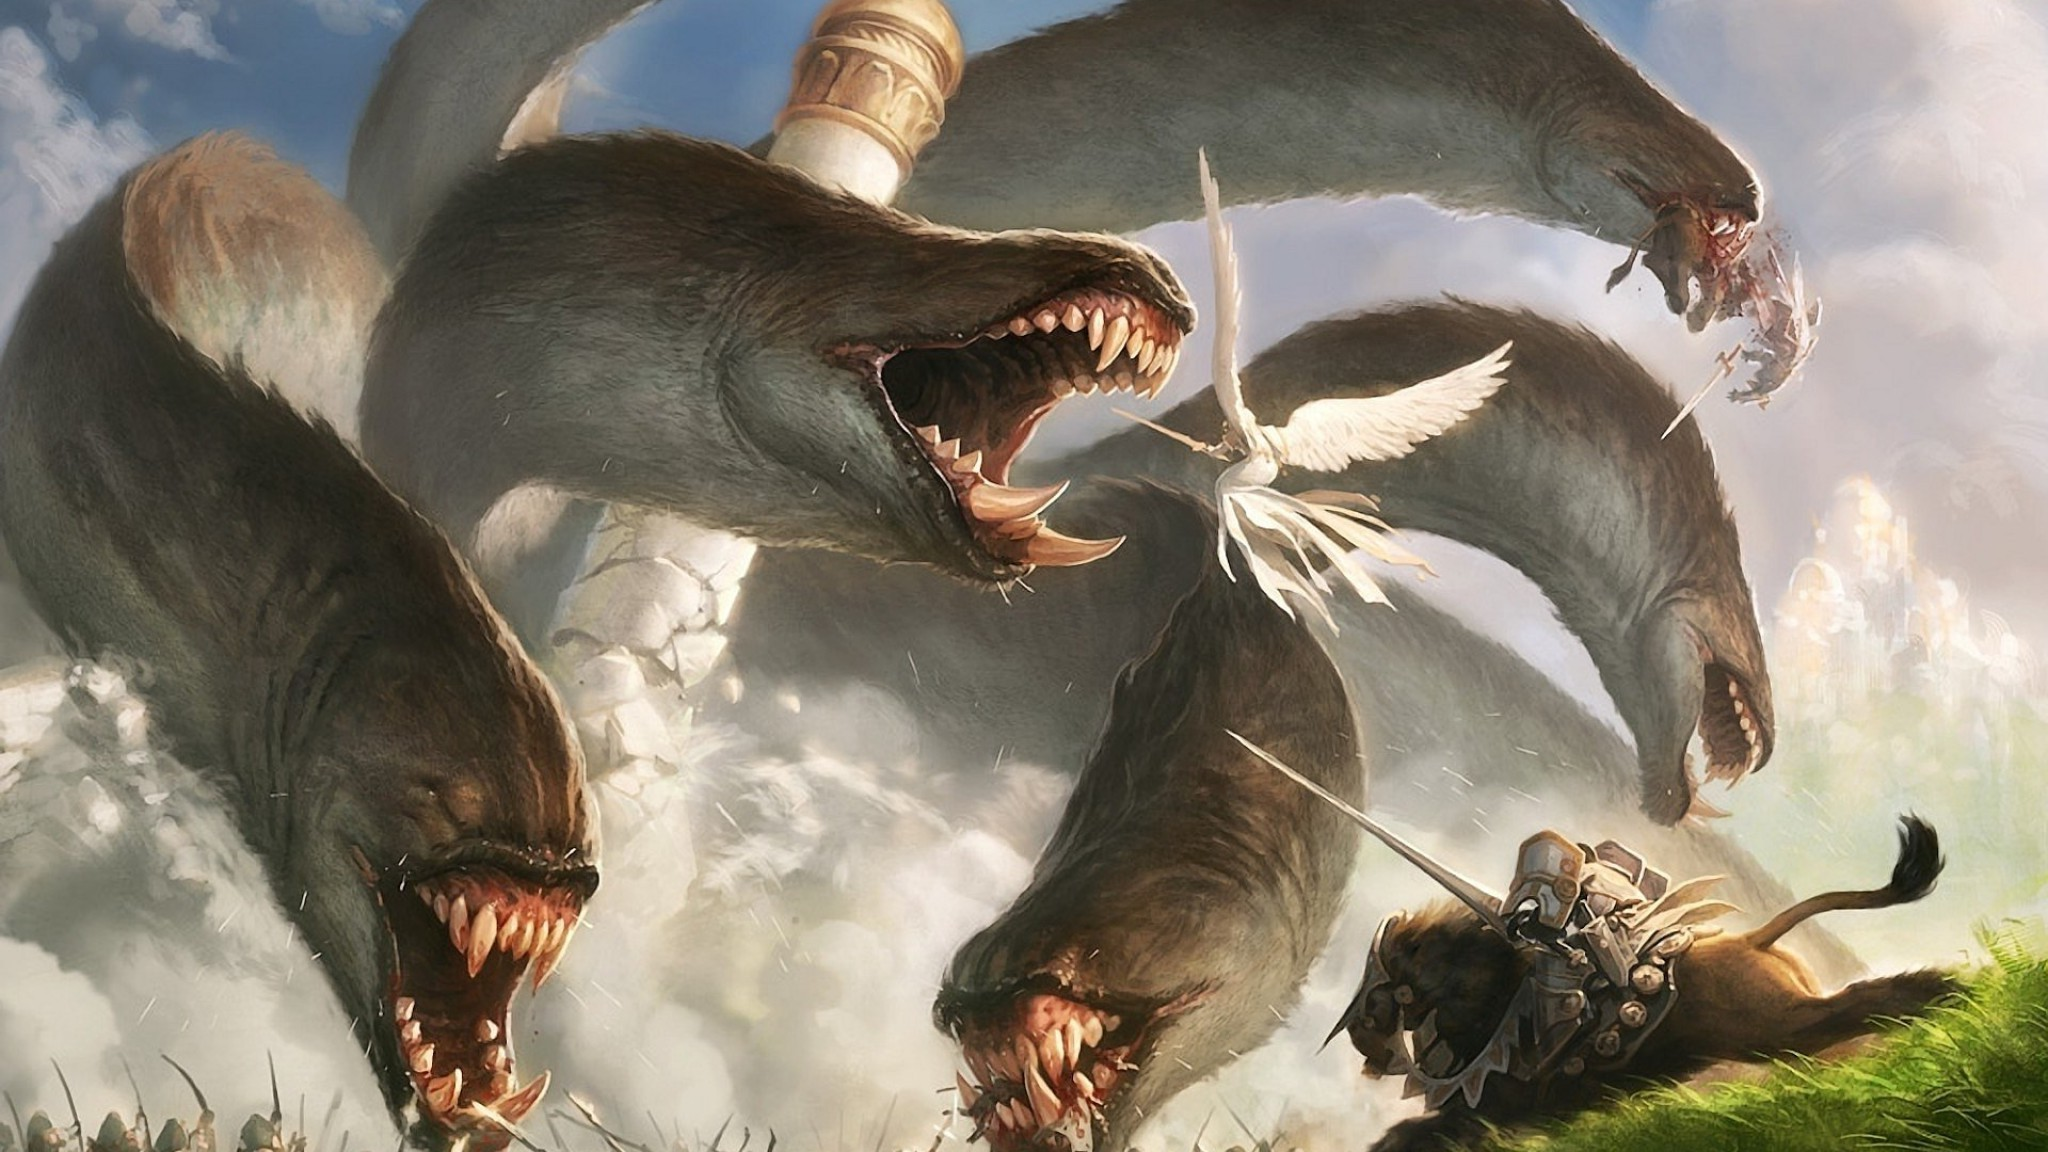 Res: 2048x1152, digital Art, Fantasy Art, Creature, Magic: The Gathering Wallpapers HD /  Desktop and Mobile Backgrounds